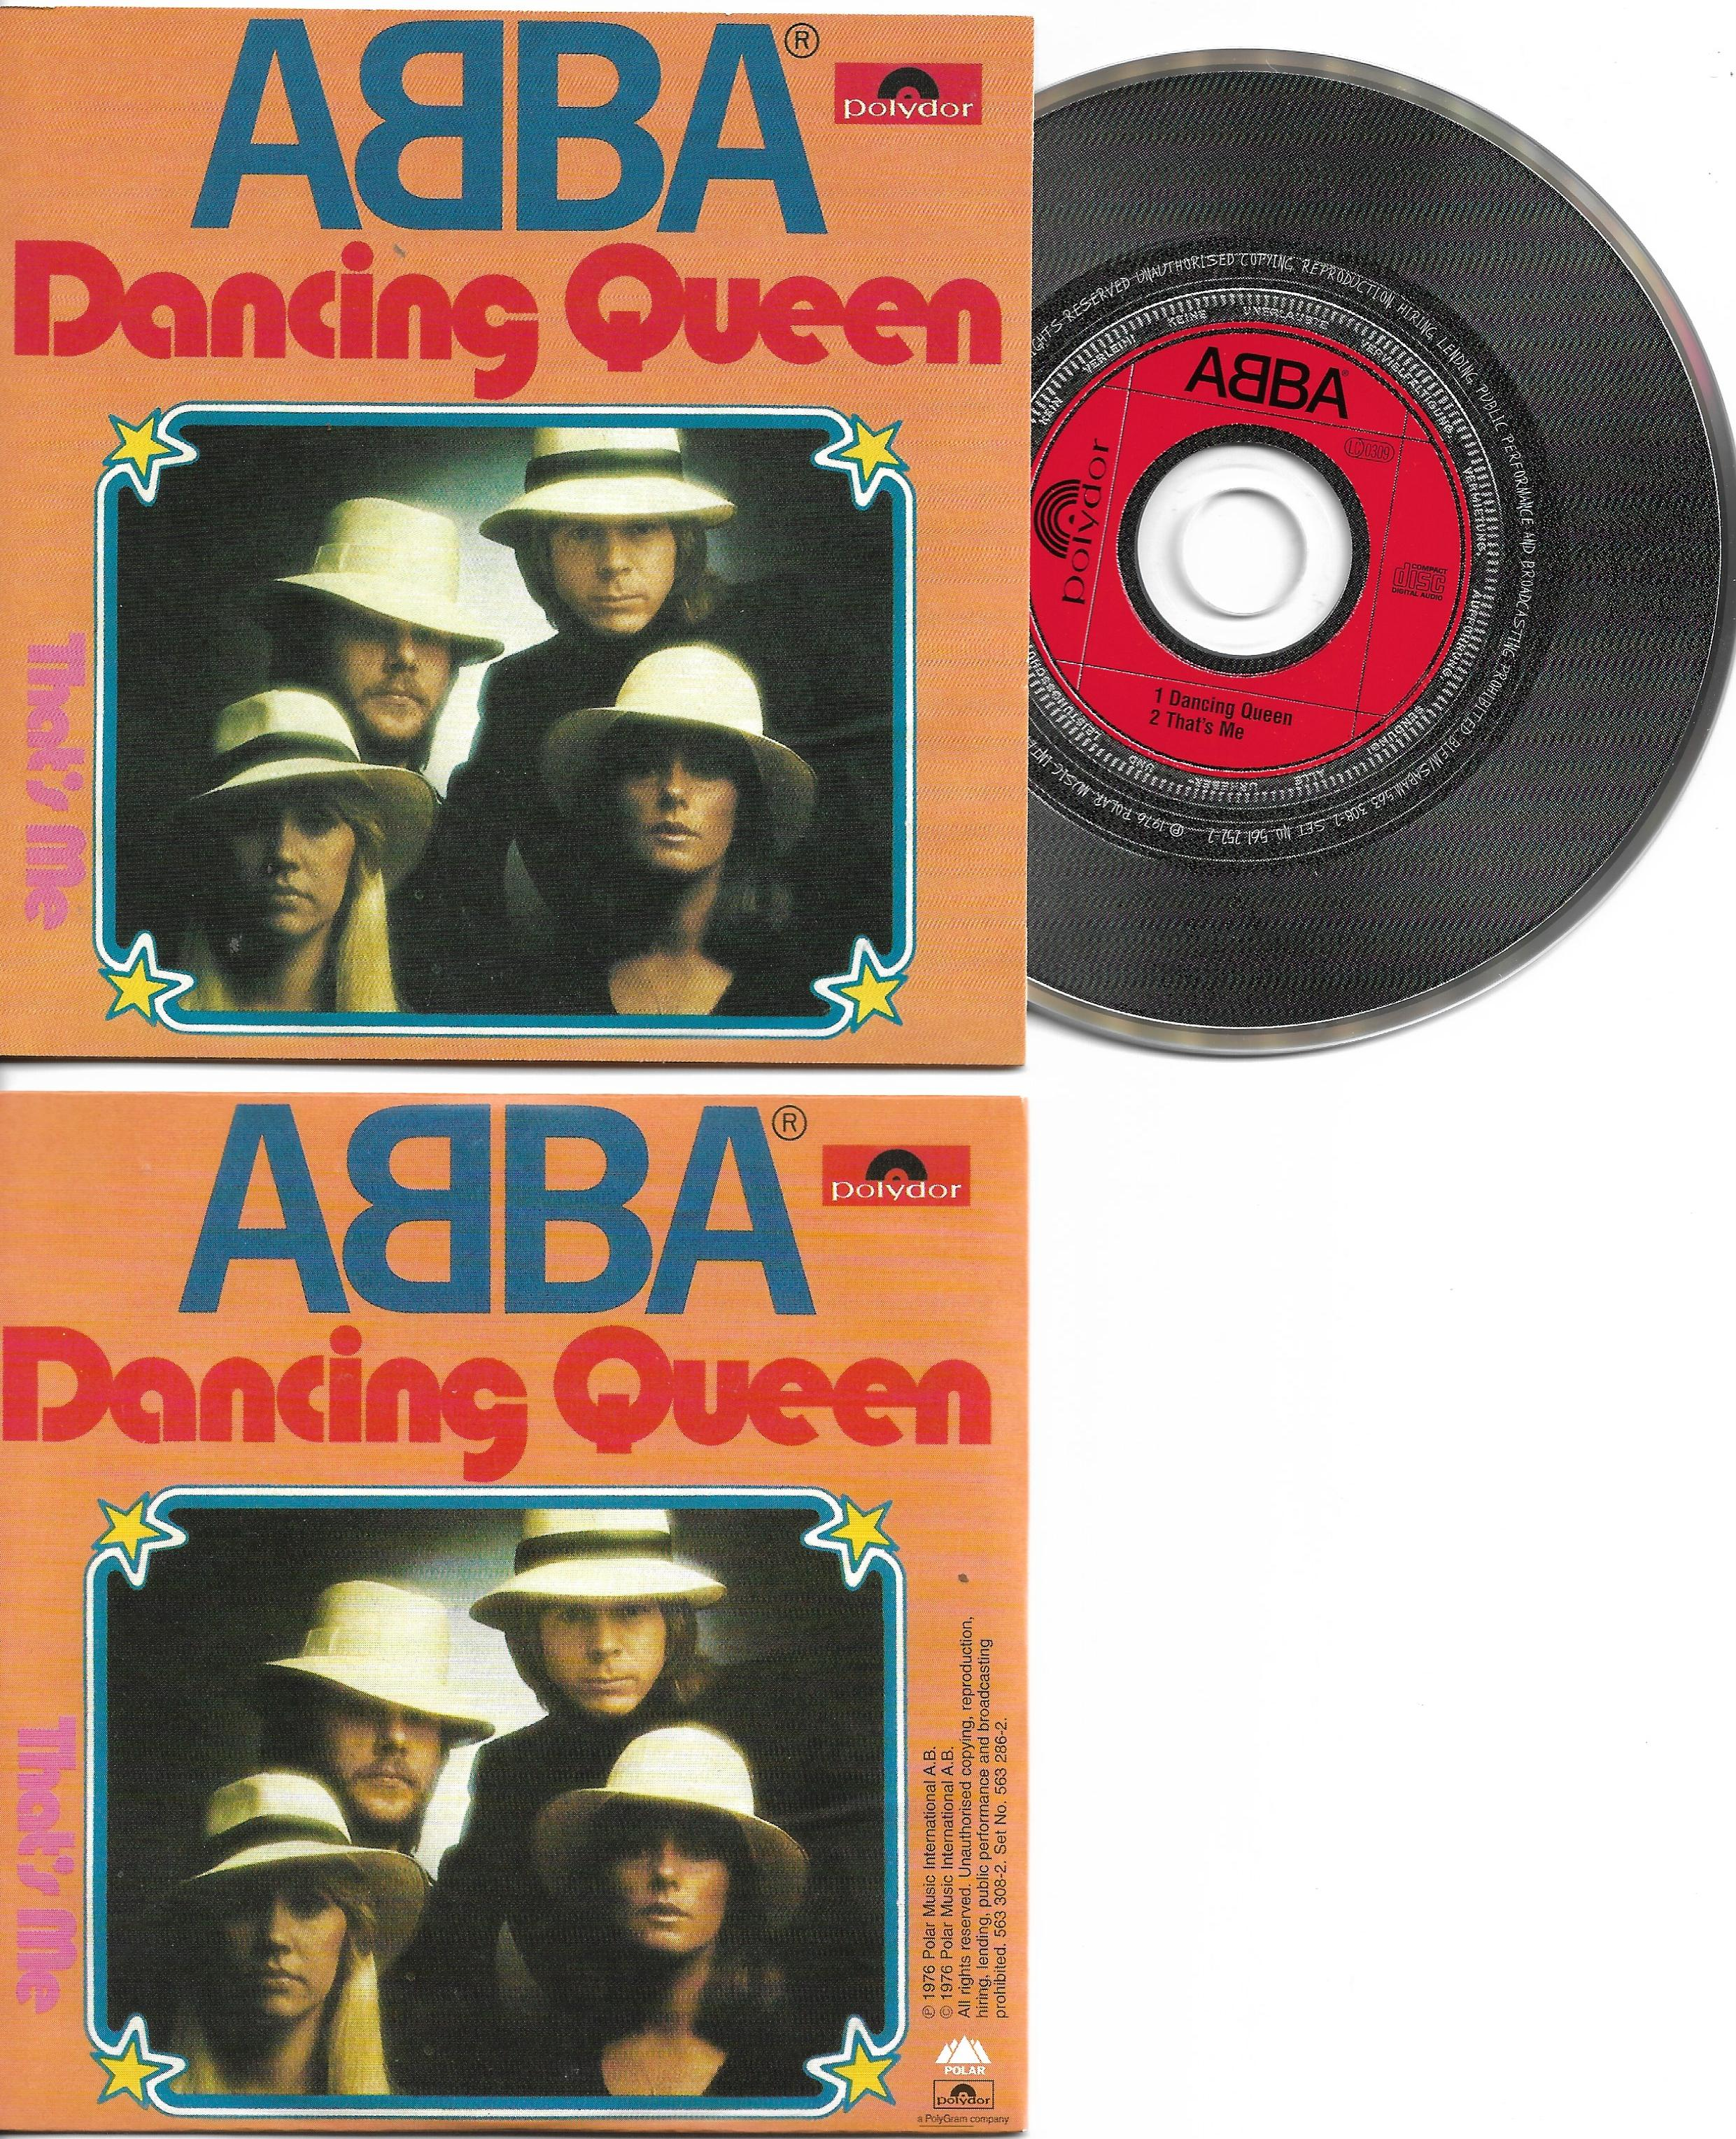 ABBA - Dancing Queen 2-track Card Sleeve